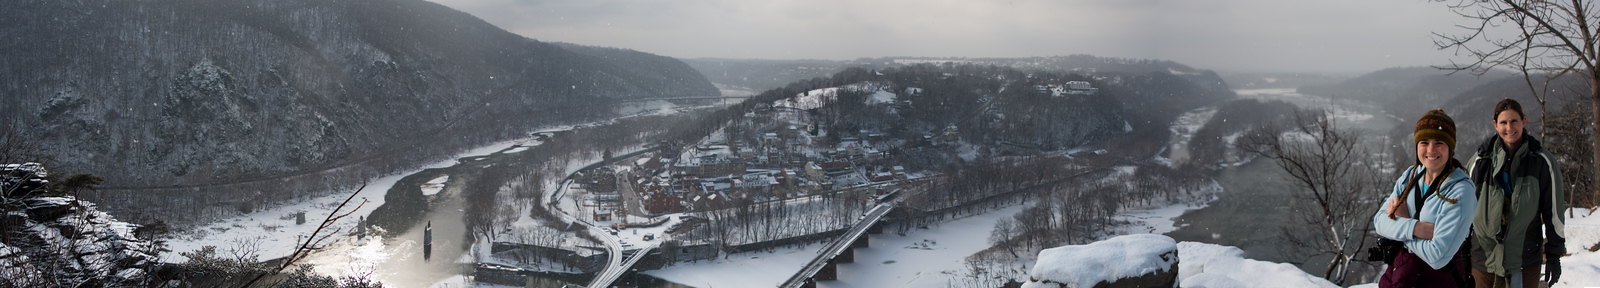 Maryland Heights 19-Jan-2009